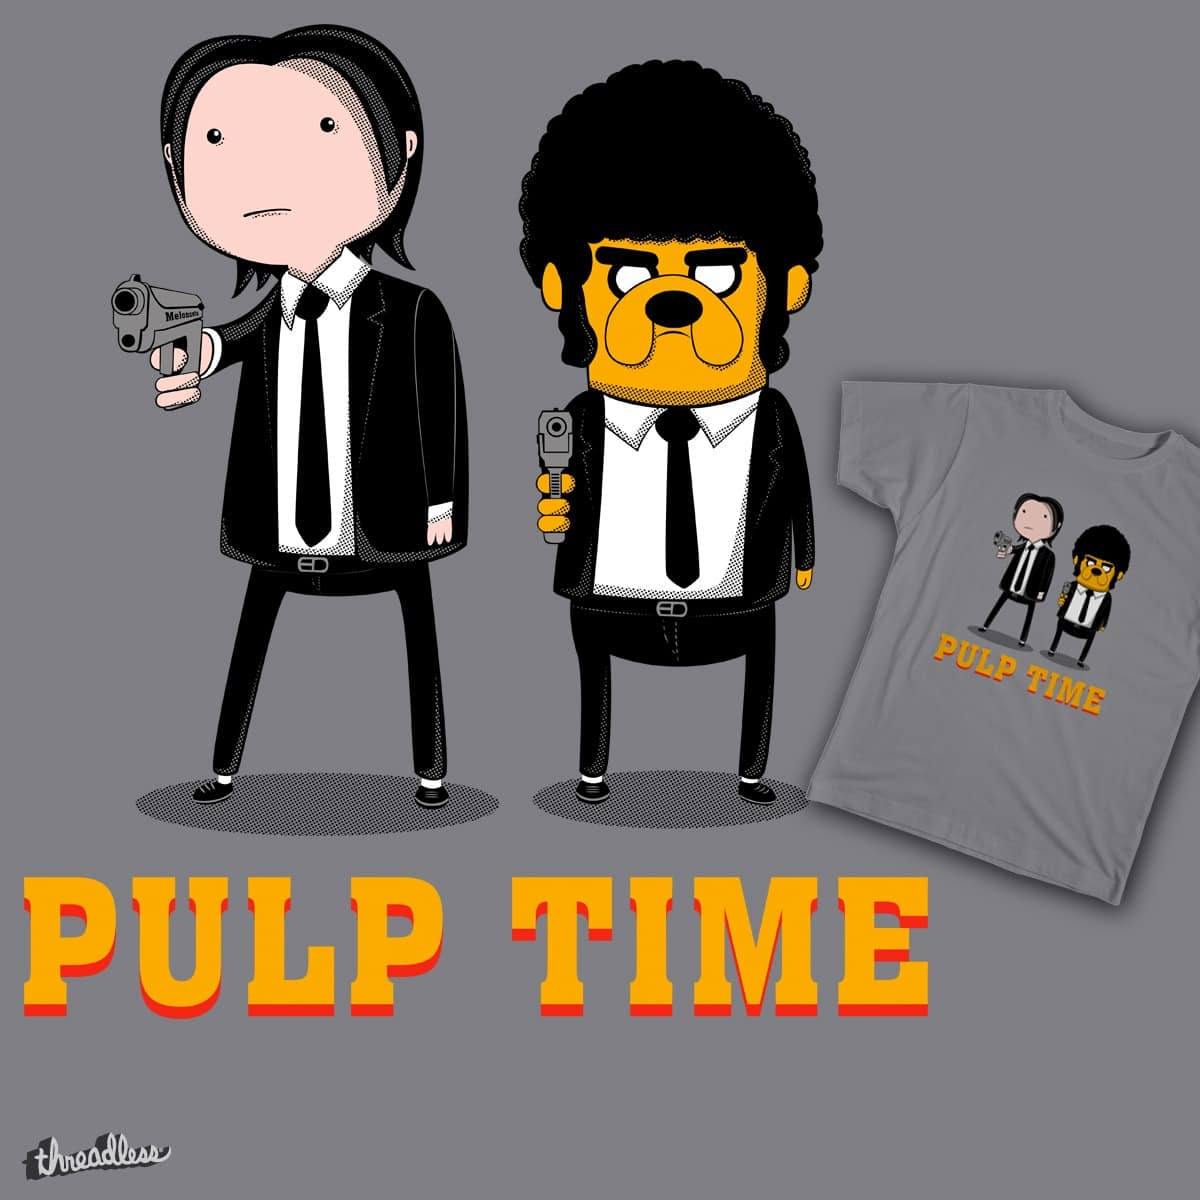 Pulp Time by Melonseta on Threadless